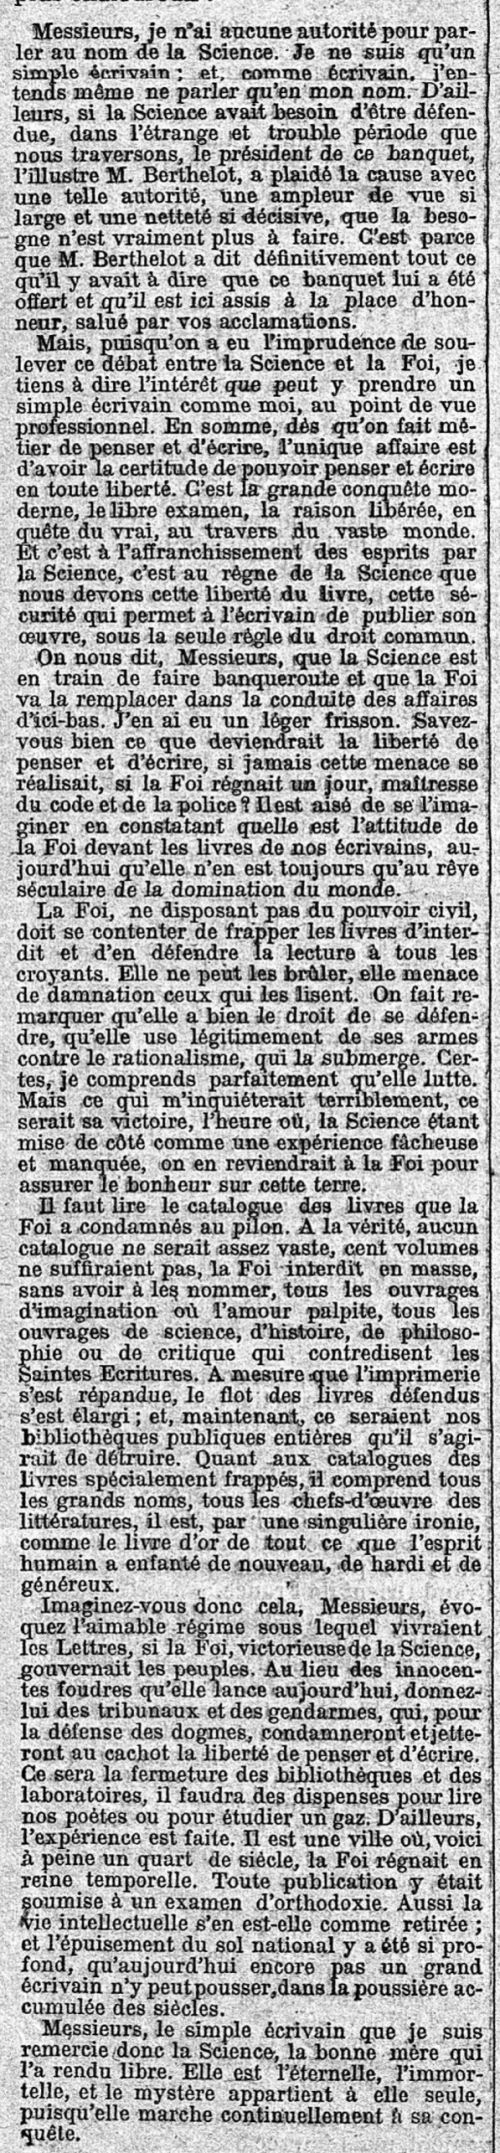 Le Figaro du 05-04-1895 Source Gallica.bnf.fr